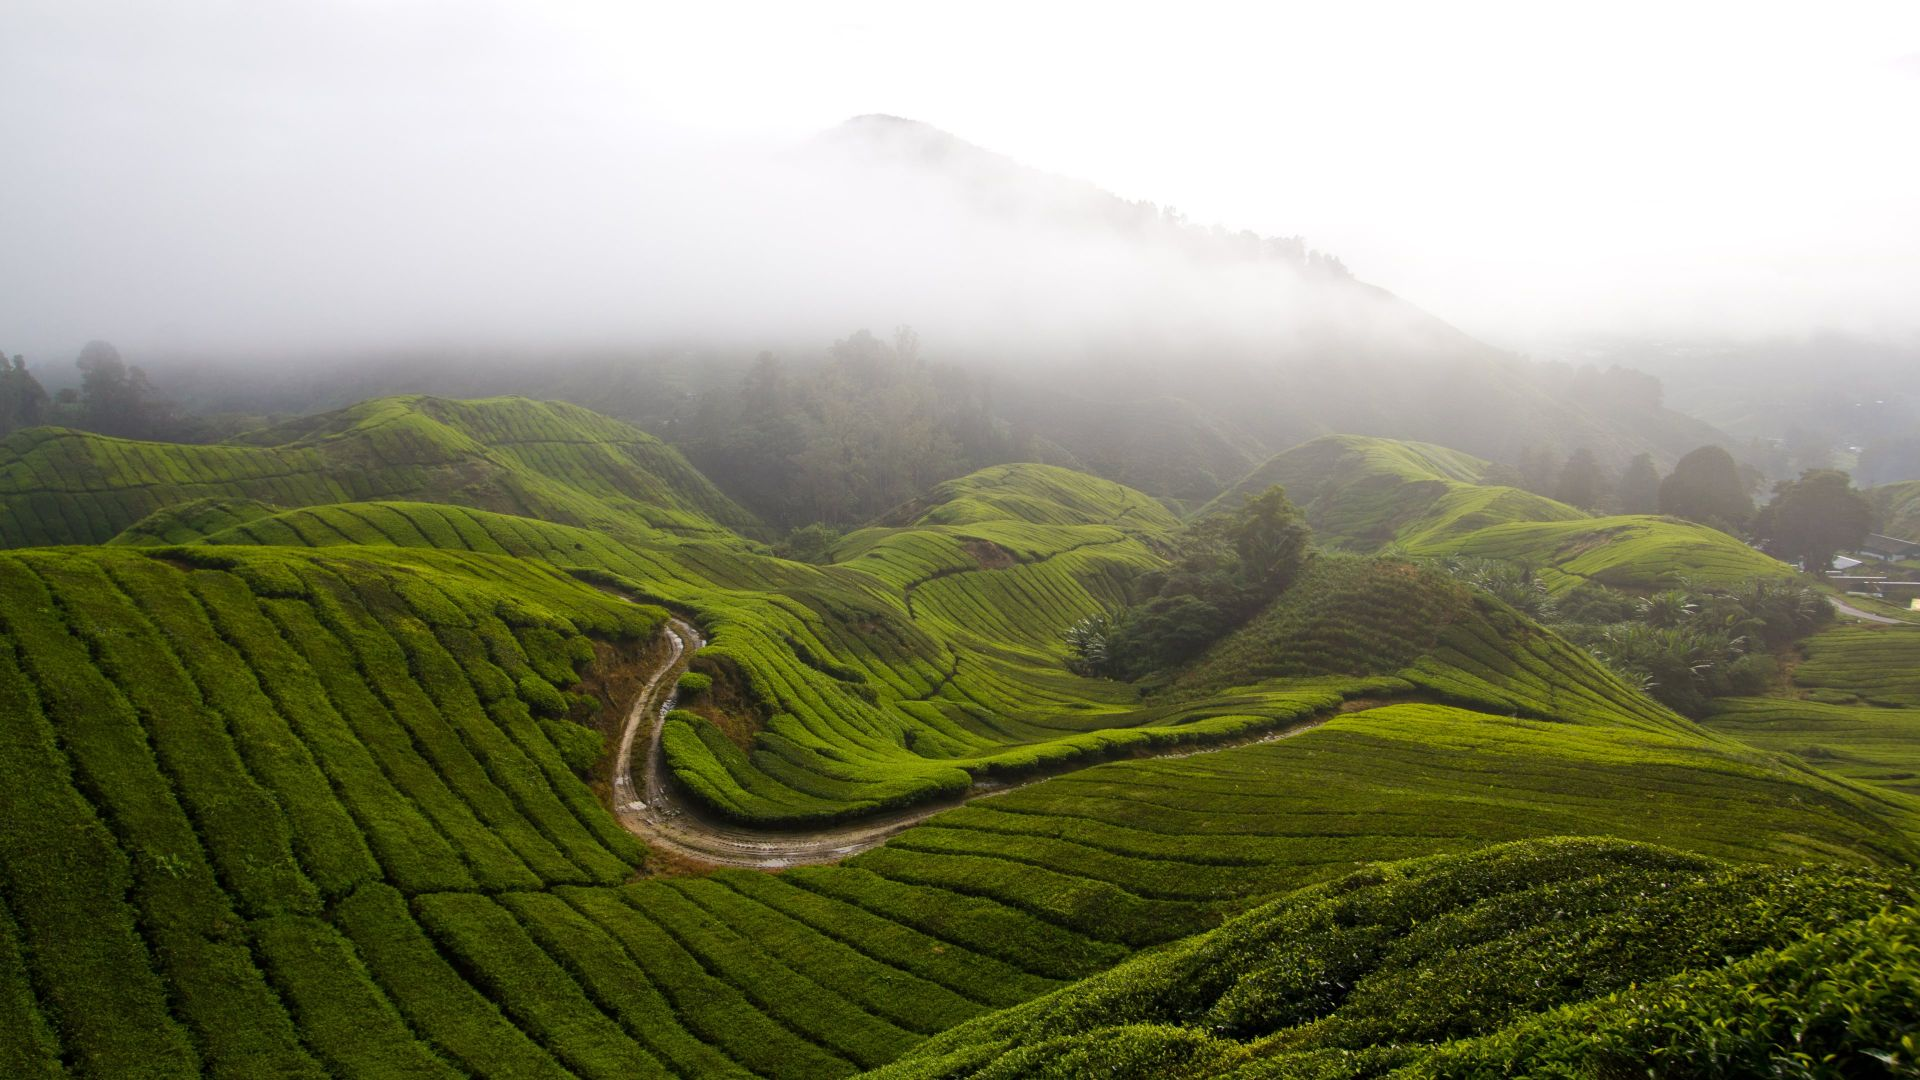 Cameron Highlands, 5k, 4k wallpaper, Malaysia, meadows, fog, sky (horizontal)